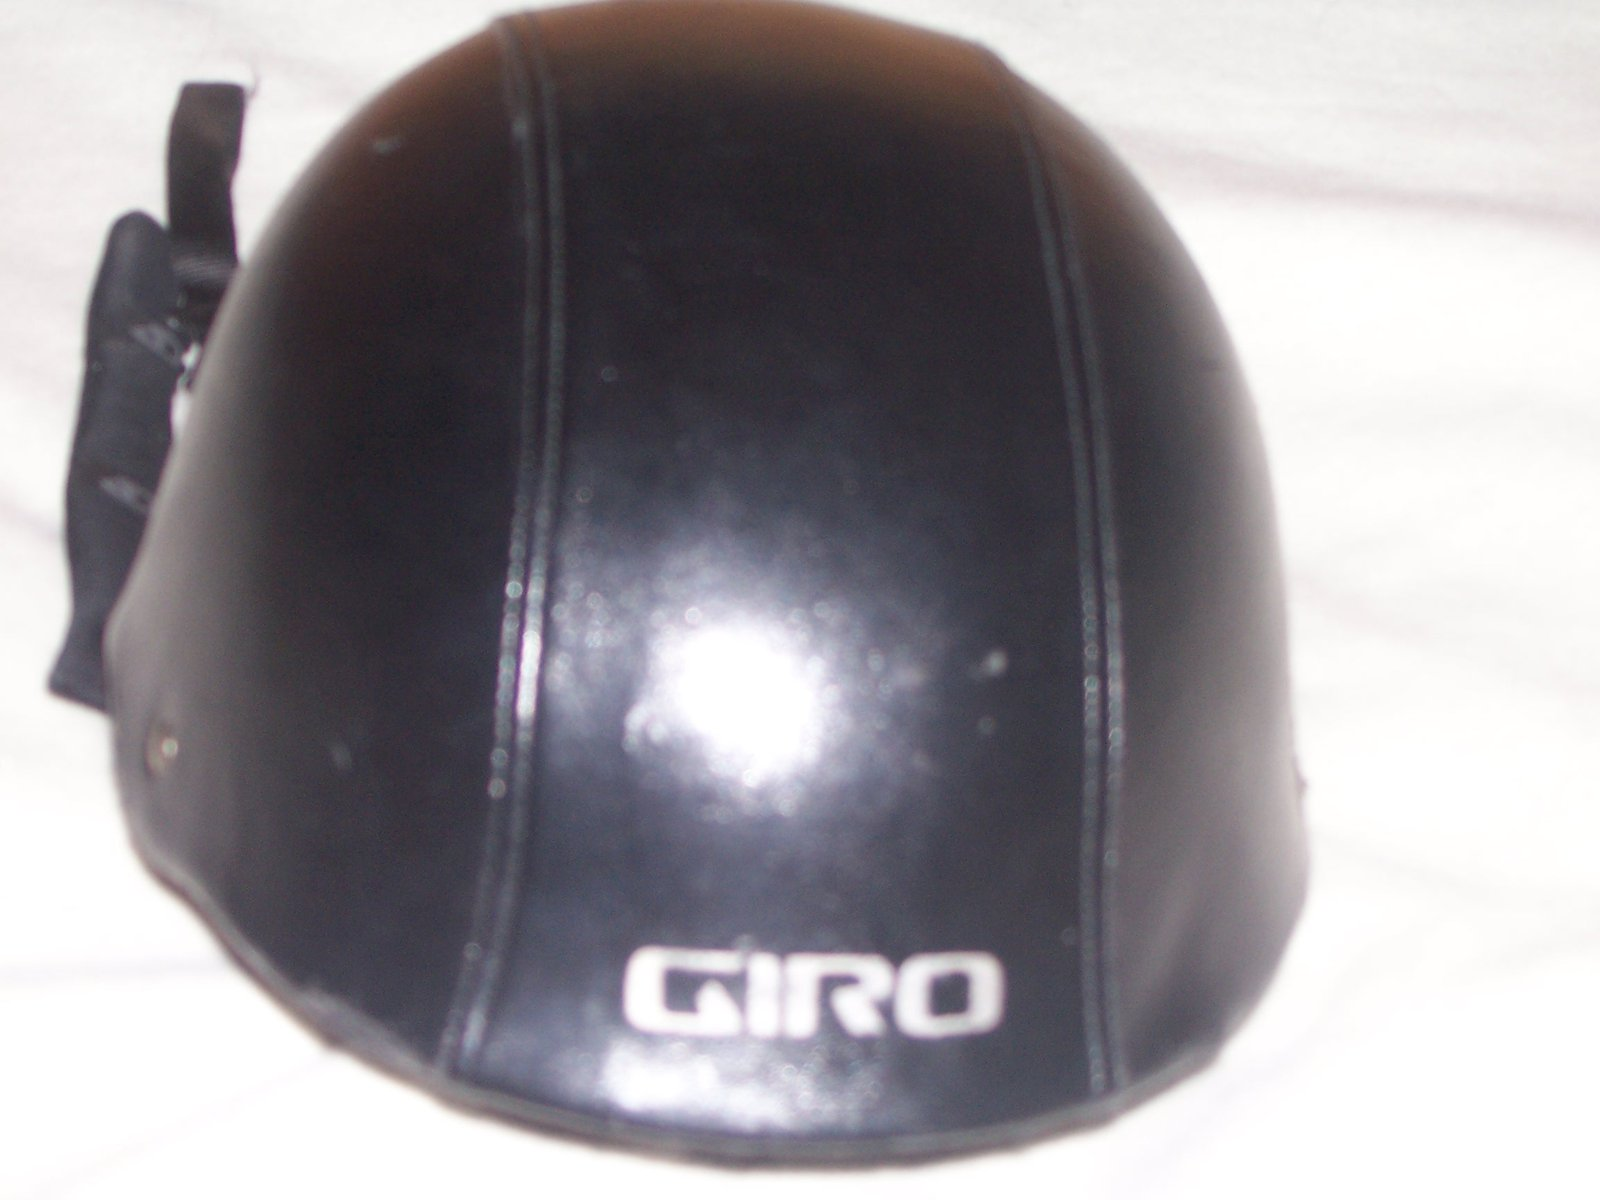 ForSale Giro helmet black/lether